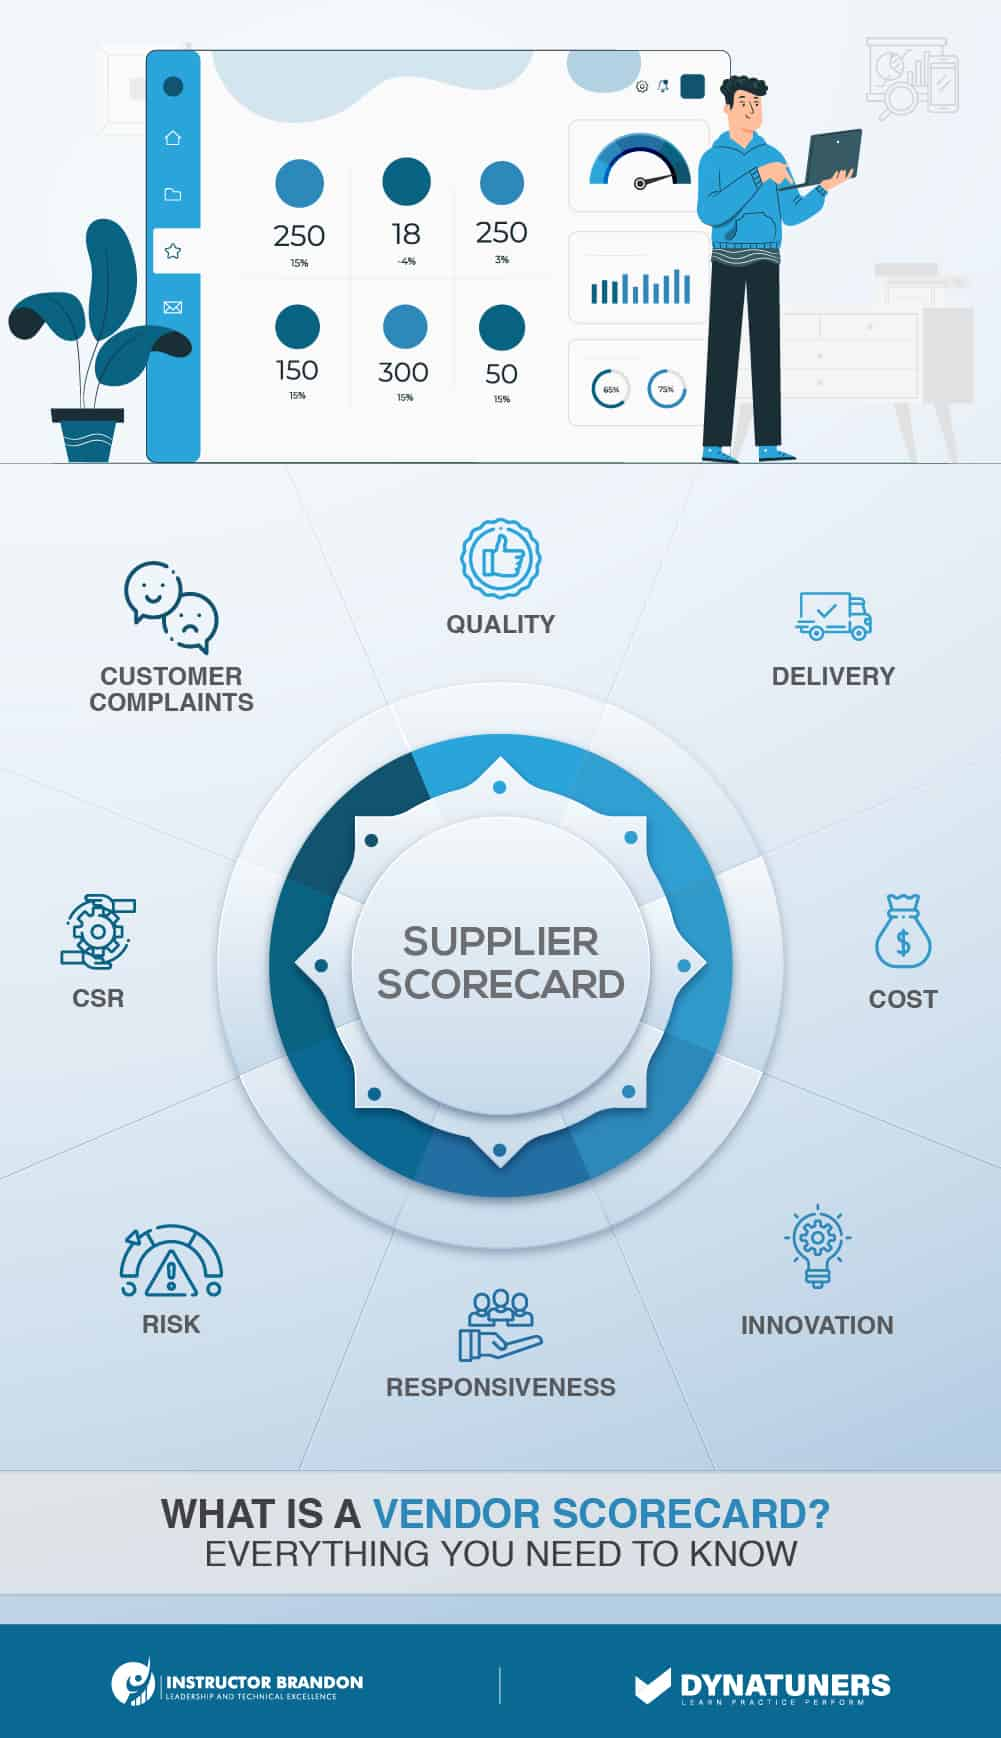 What Is a Vendor Scorecard? Everything You Need to Know